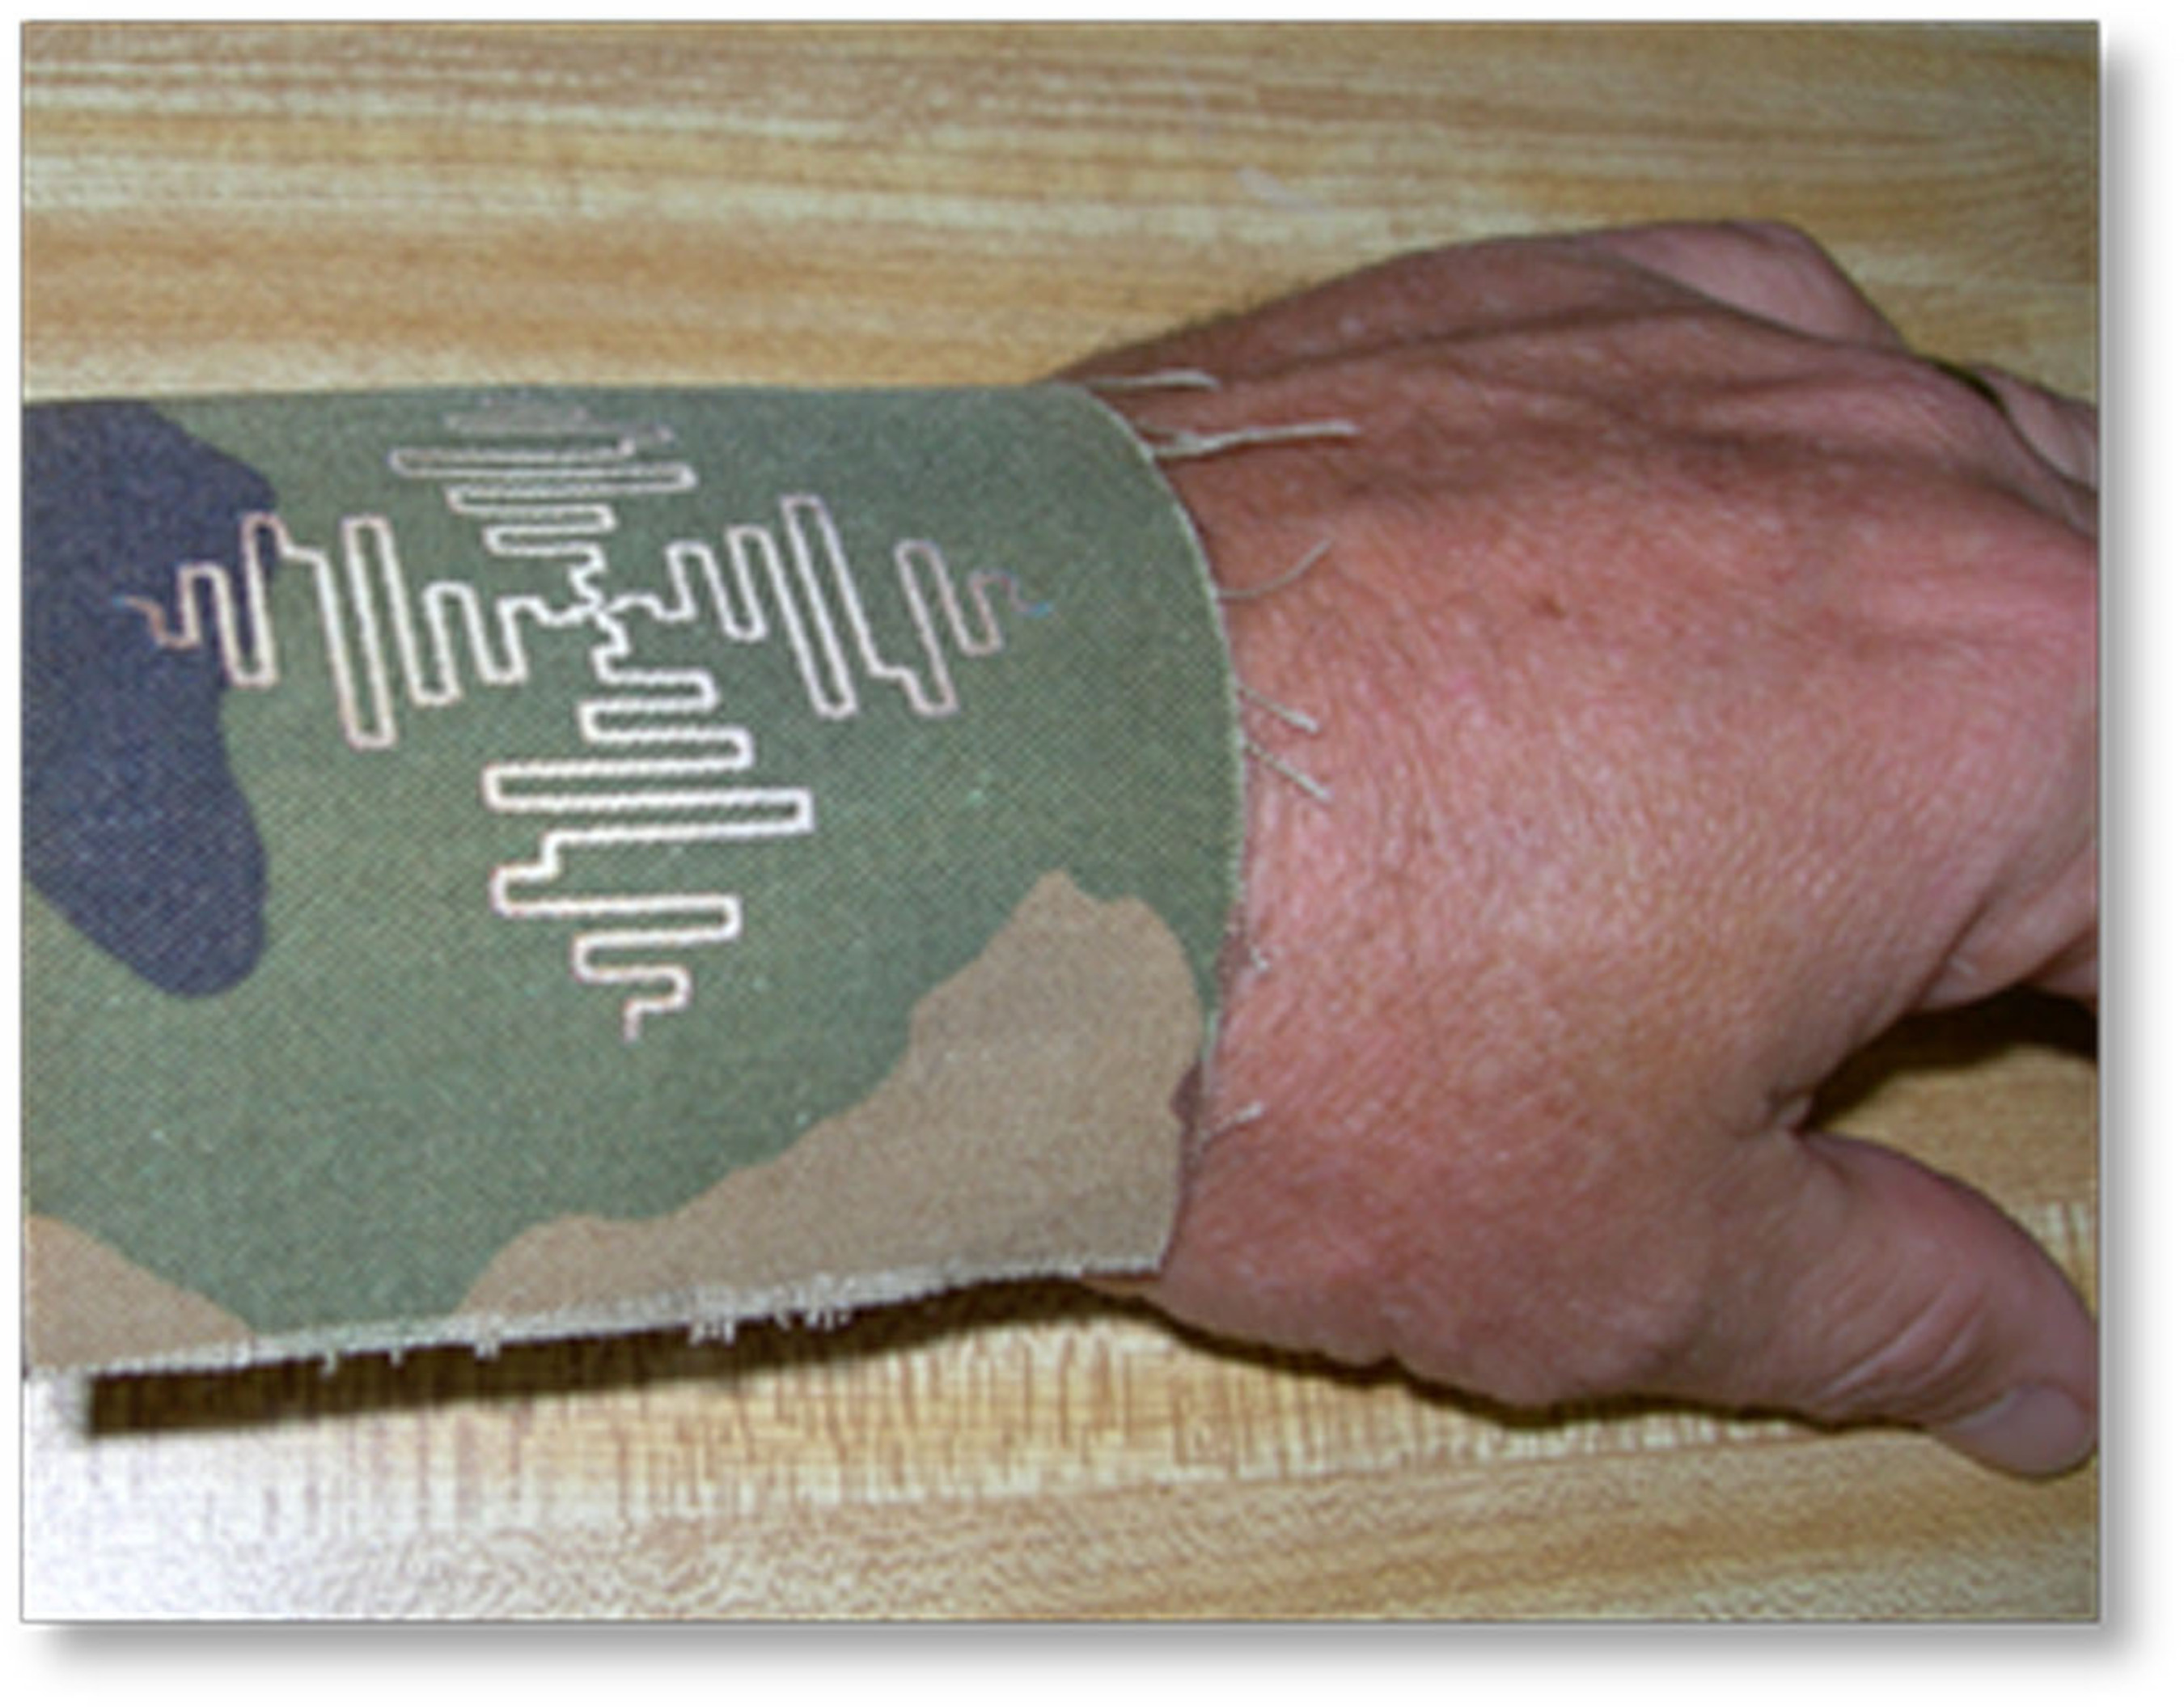 Wrist Antenna: Printing Electronics on Clothing Allows for Lighter, more Ubiquitous Communications Capabilities. Courtesy, US Army (PRNewsFoto/FlexTech Alliance) (PRNewsFoto/FLEXTECH ALLIANCE)